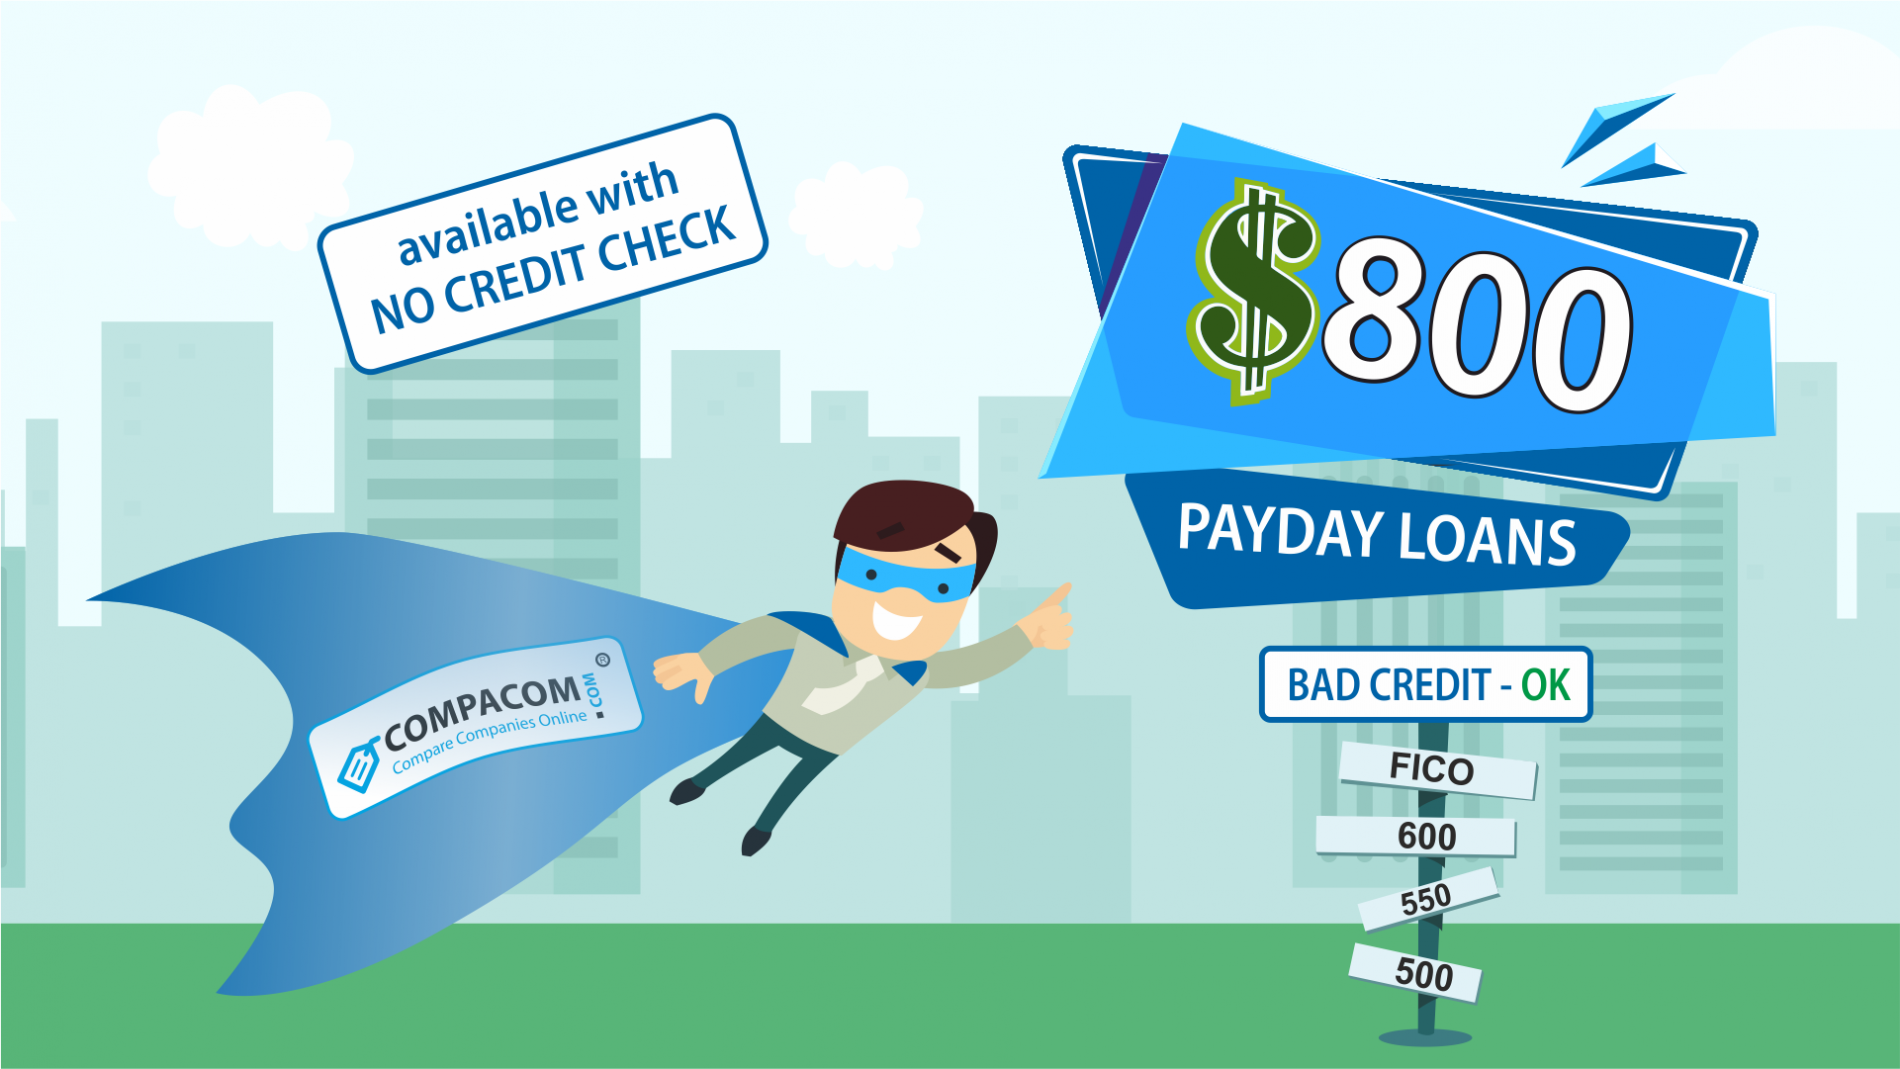 Get up to $800 today from the most reliable direct lenders online or in-store near you. Available for bad credit, quick and easy funds.